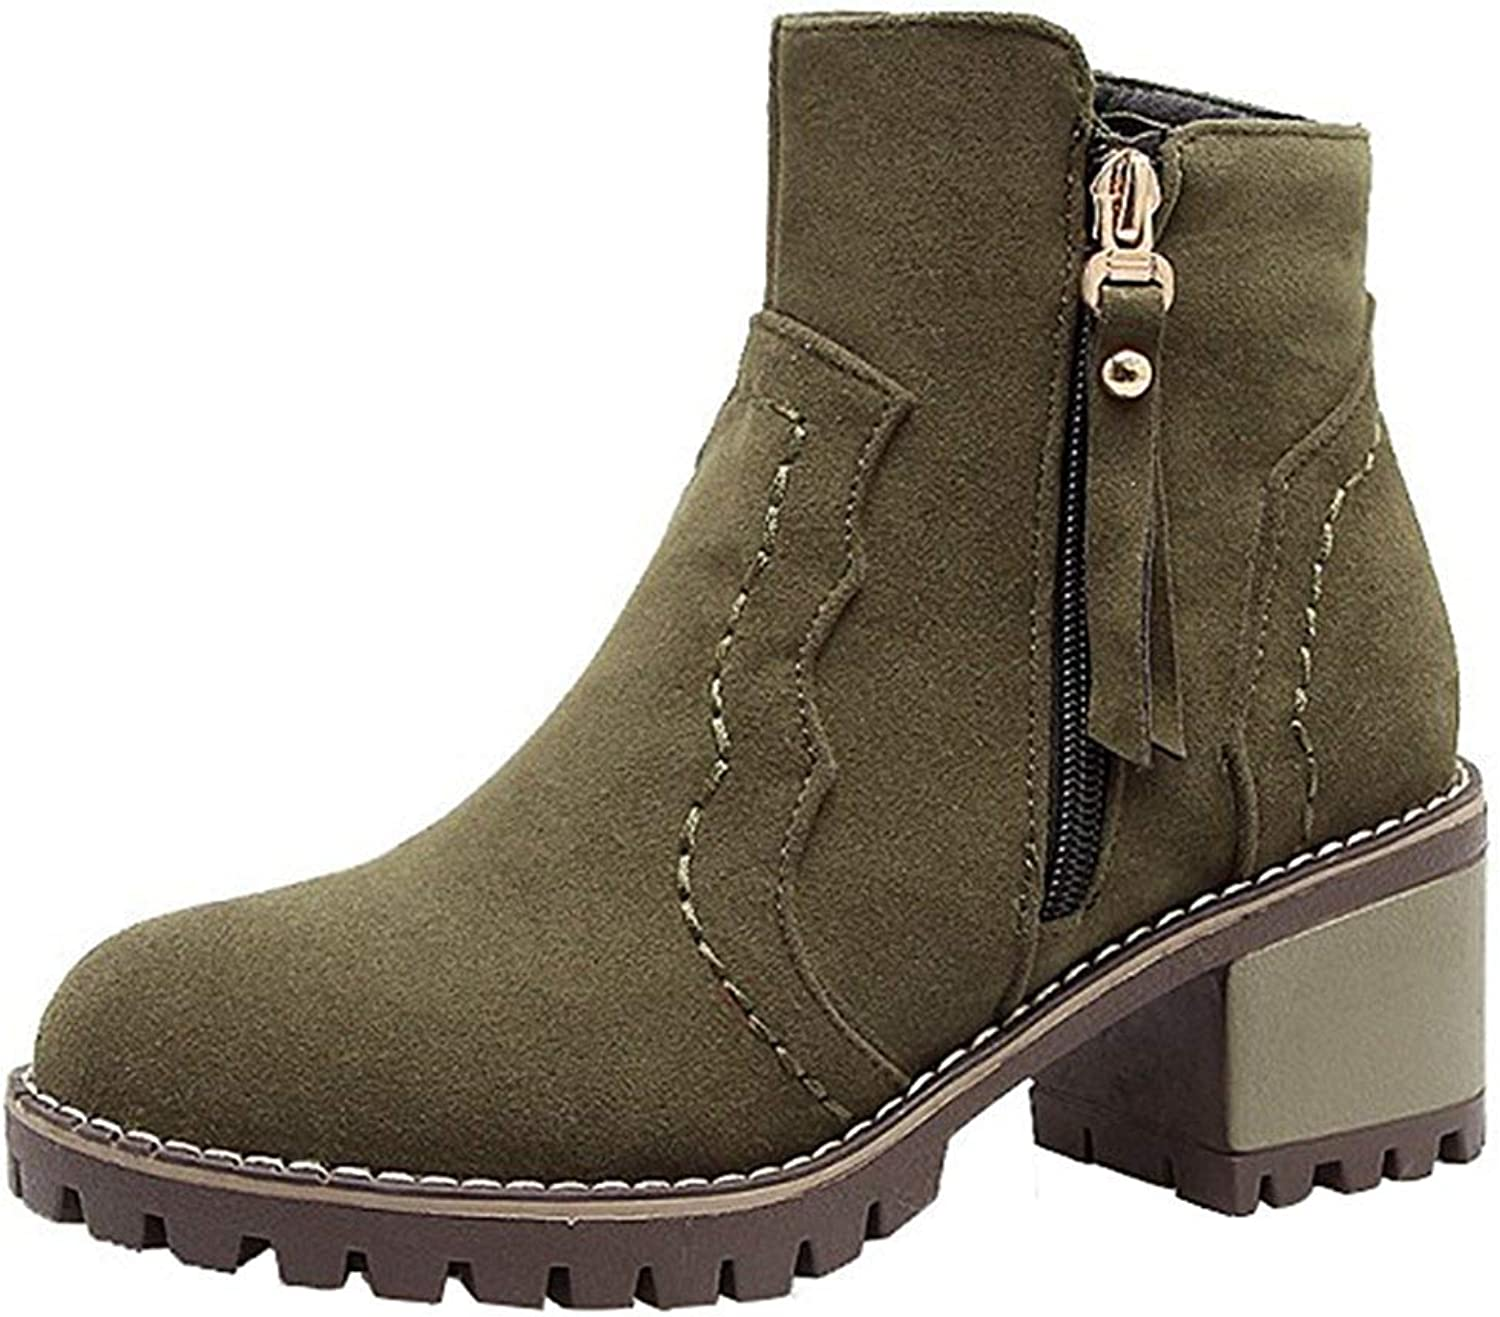 Gcanwea Women's Trendy Faux Suede Round Toe Side Zipper Ankle Booties shoes Block Medium Heel Short Boots Ladies Casual Skinny Joker Dress Easy to Match Green 6.5 M US Short Boots